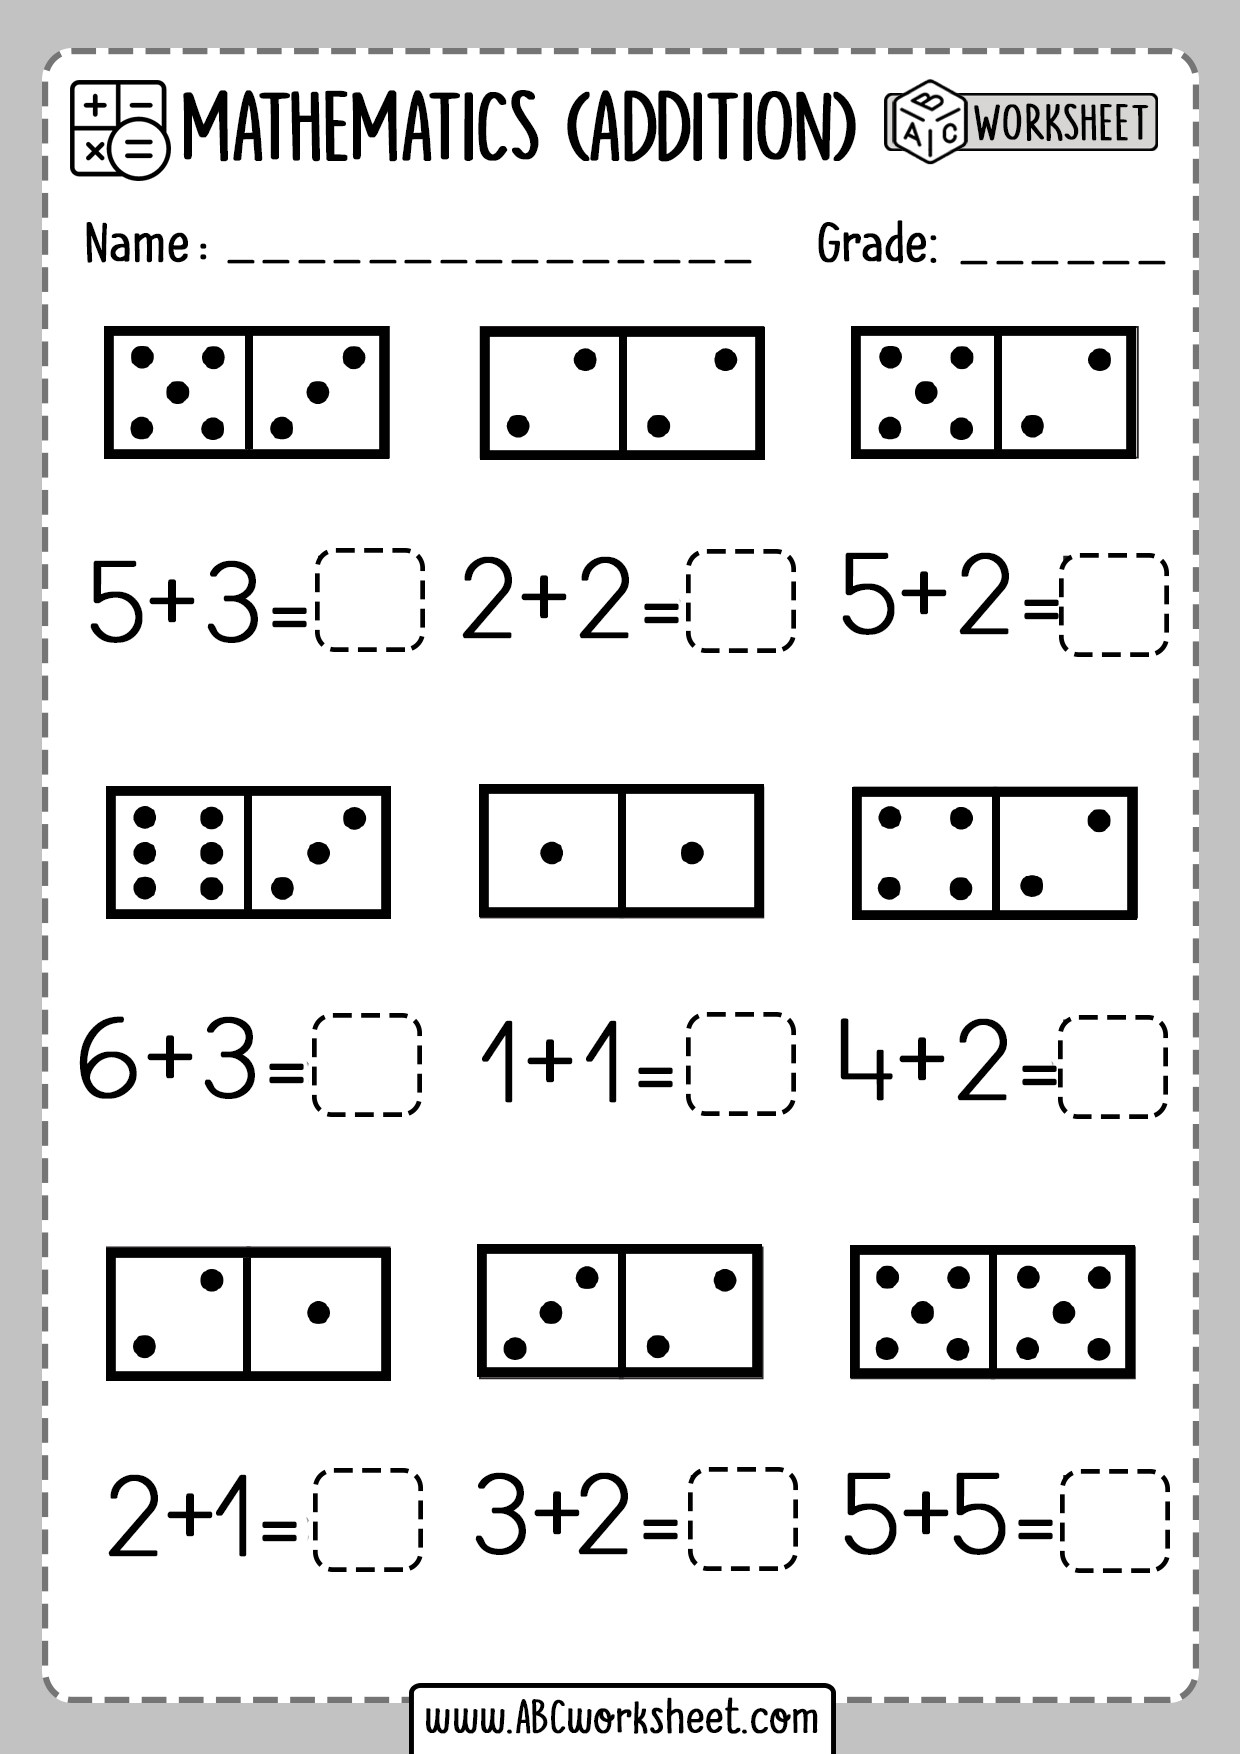 Kindergarten Math Worksheet Pdf Math Worksheet Kindergarten Addition Sheets Subtraction